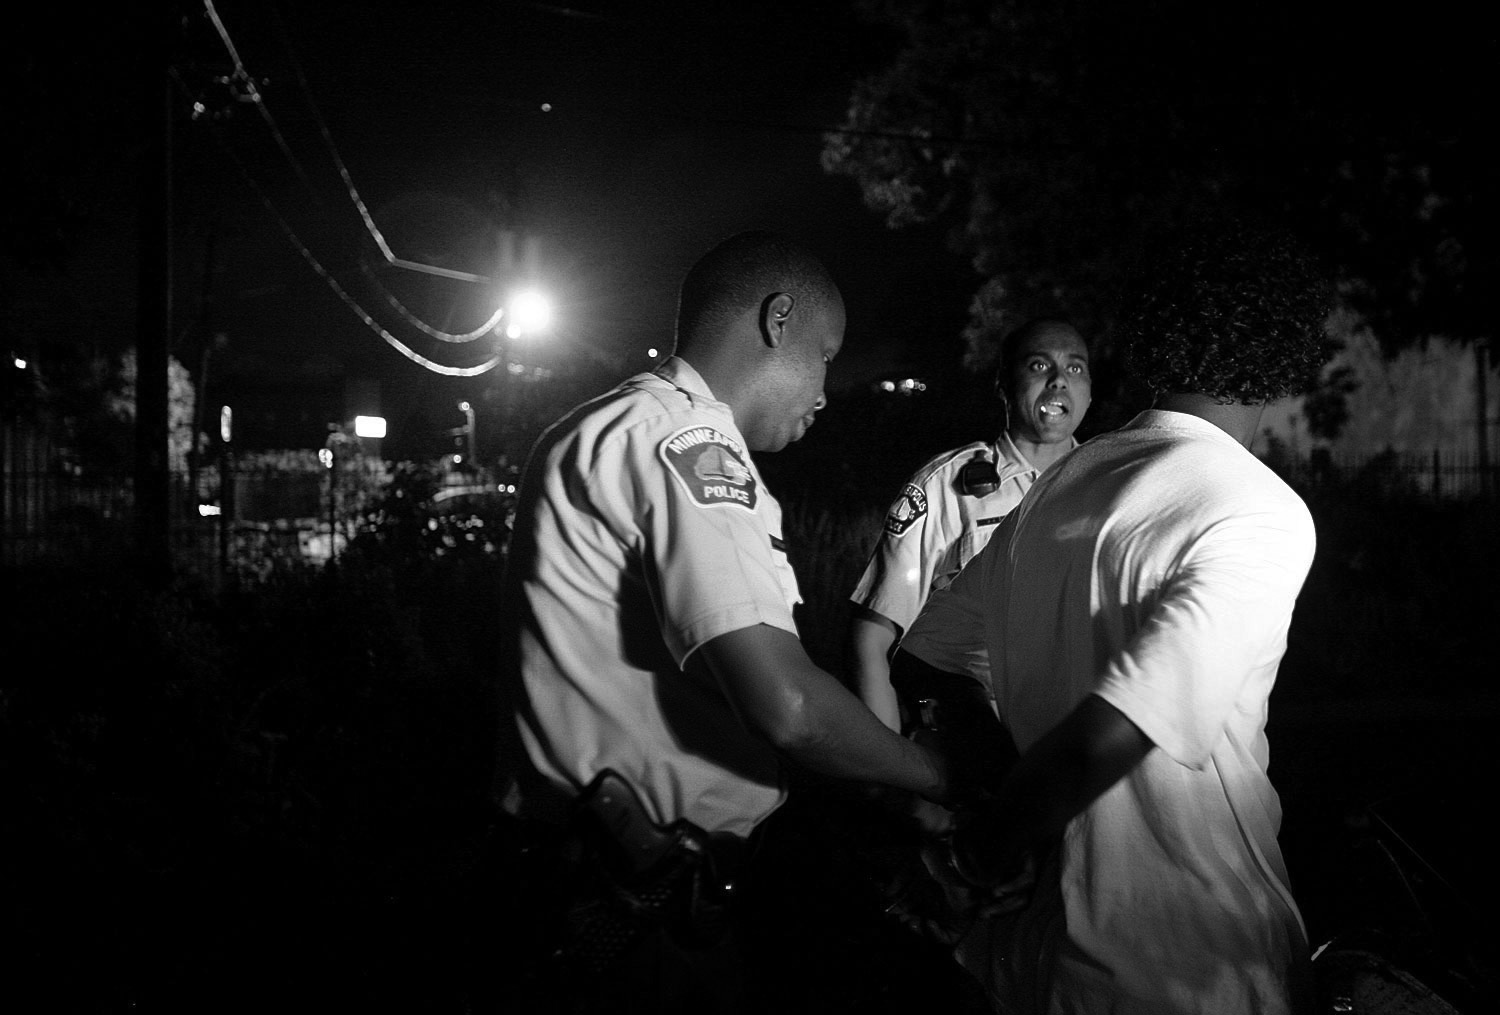 Officer Mohamed Abdullahi handcuffs a young offender as his partner Abdiwahab Ali assists in Minneapolis. Abdullahi and Ali were recruited by the Minneapolis Police Department to deter crime within the Somali-American population in the Cedar-Riverside neighborhood.